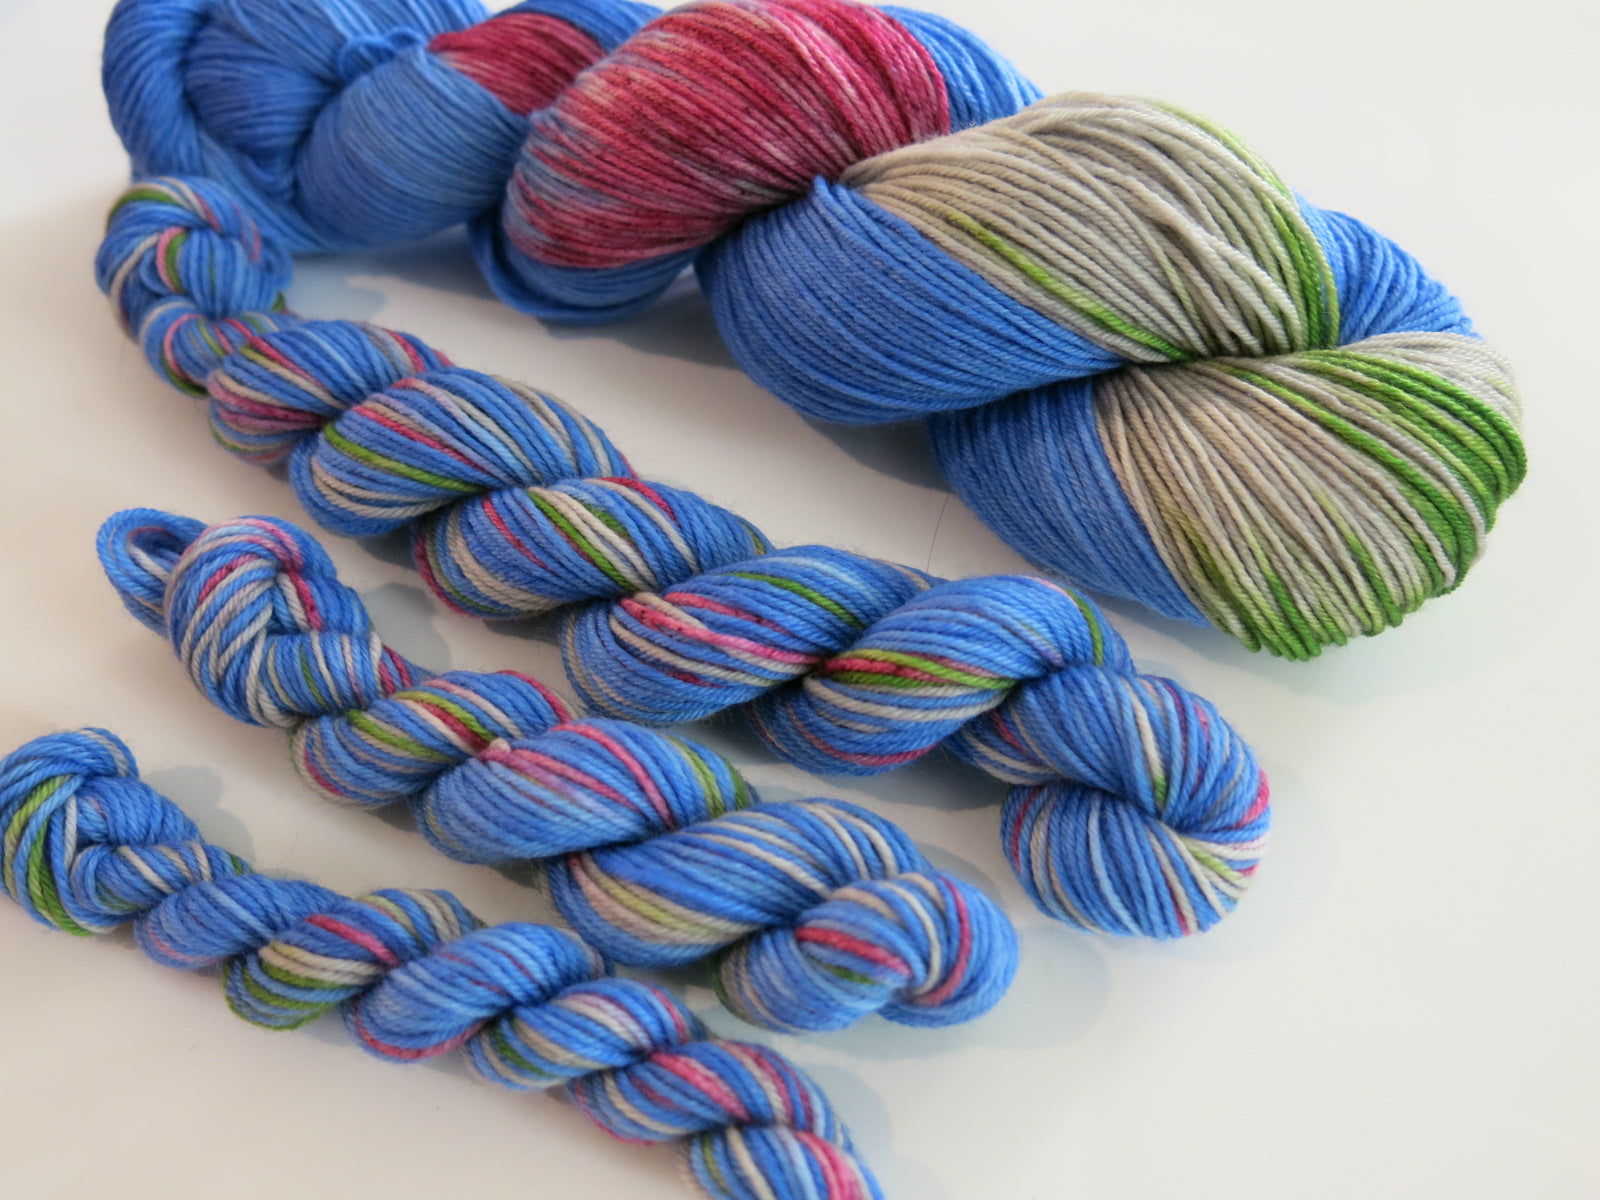 blue and grey sock yarn mini skeins for knitting and crochet